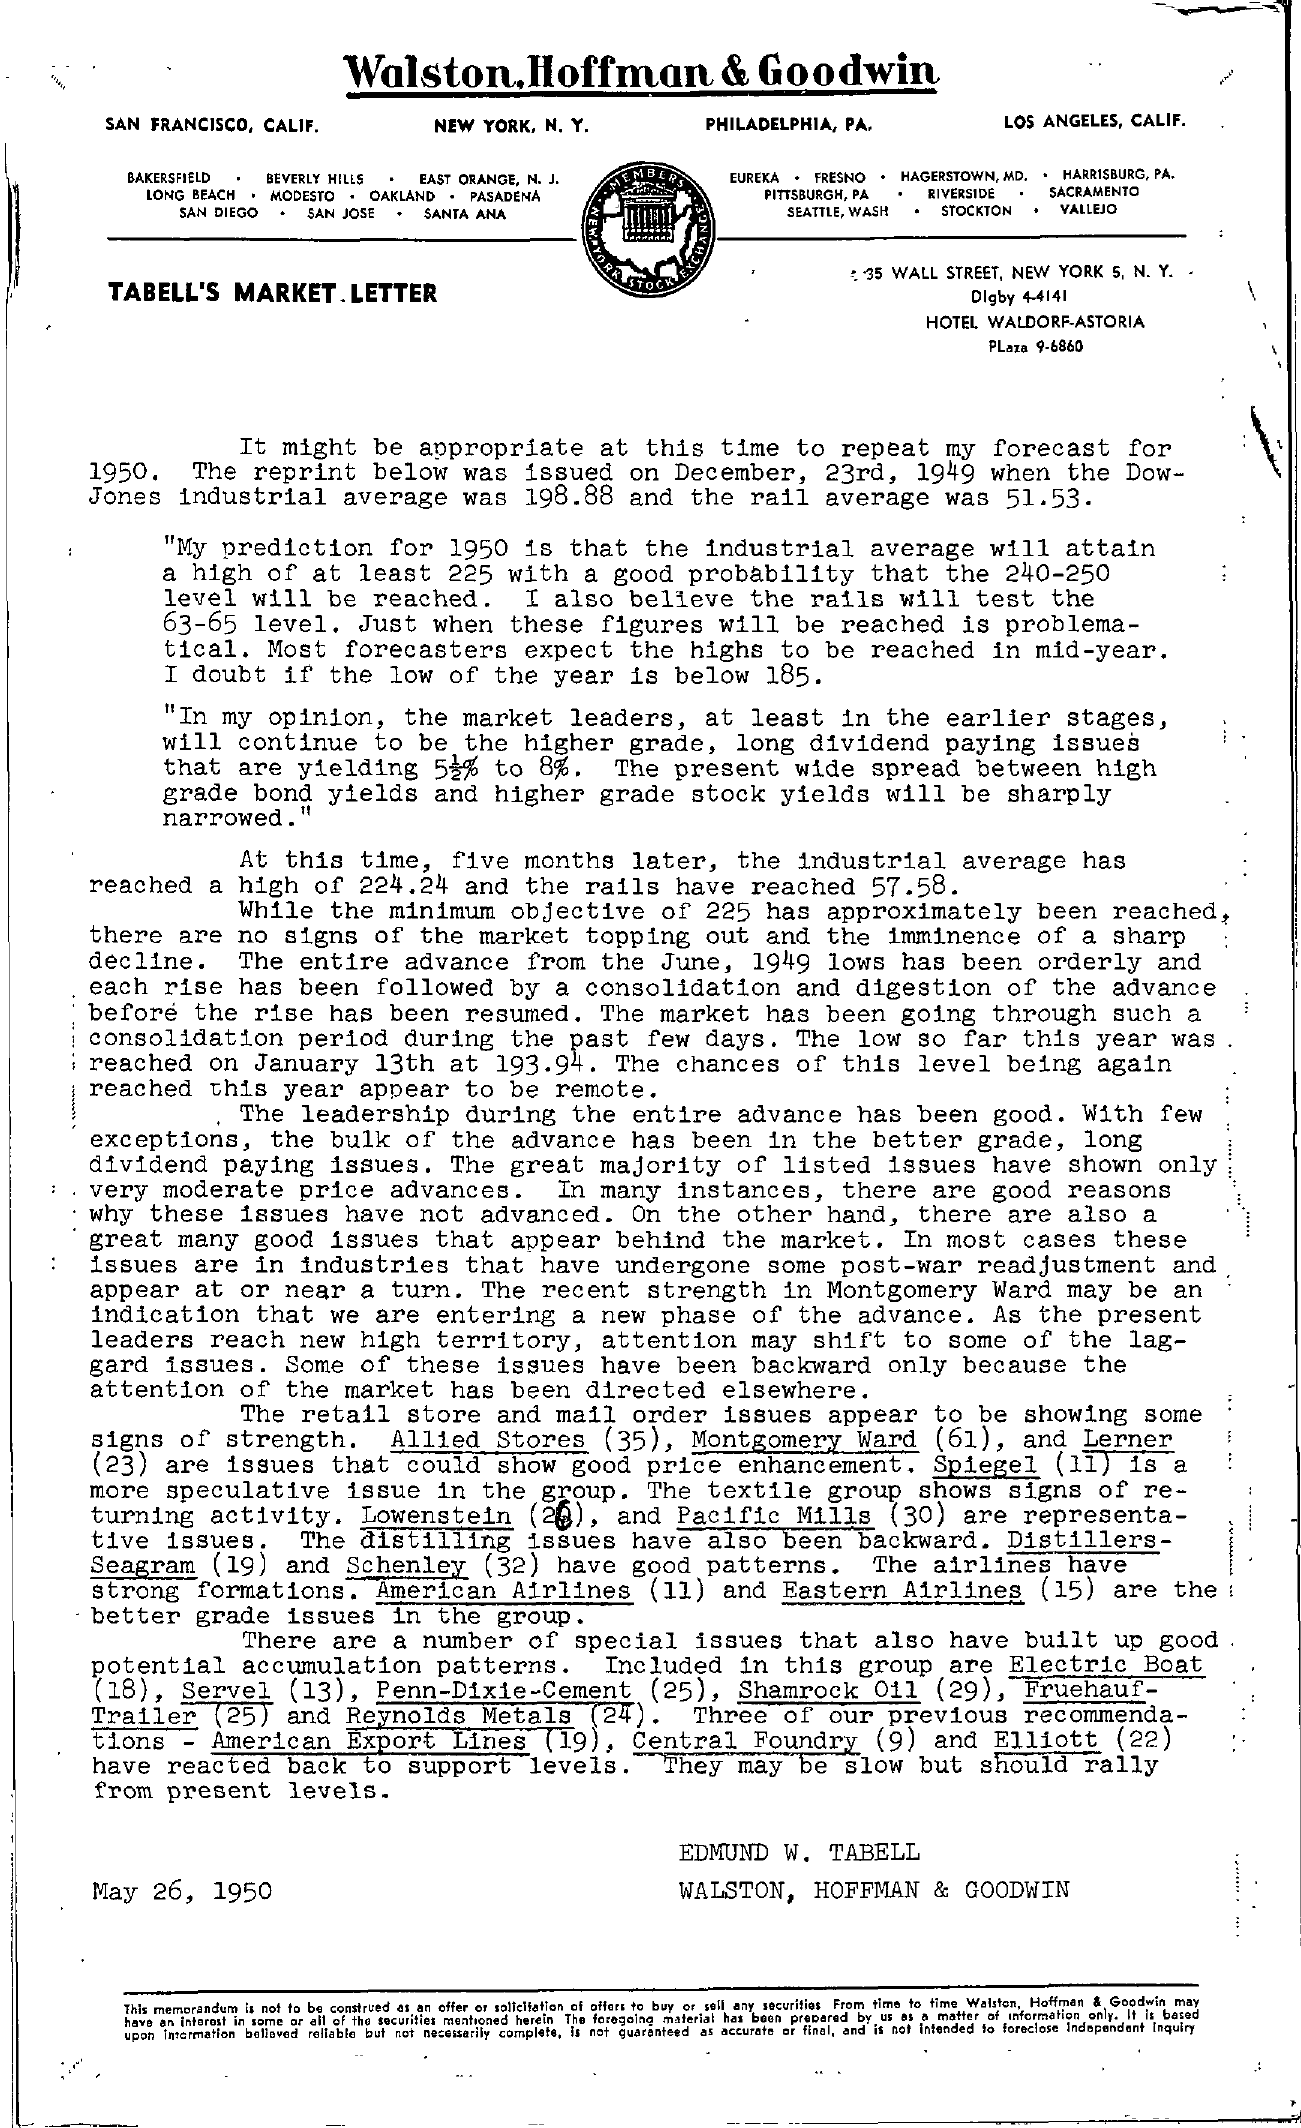 Tabell's Market Letter - May 26, 1950